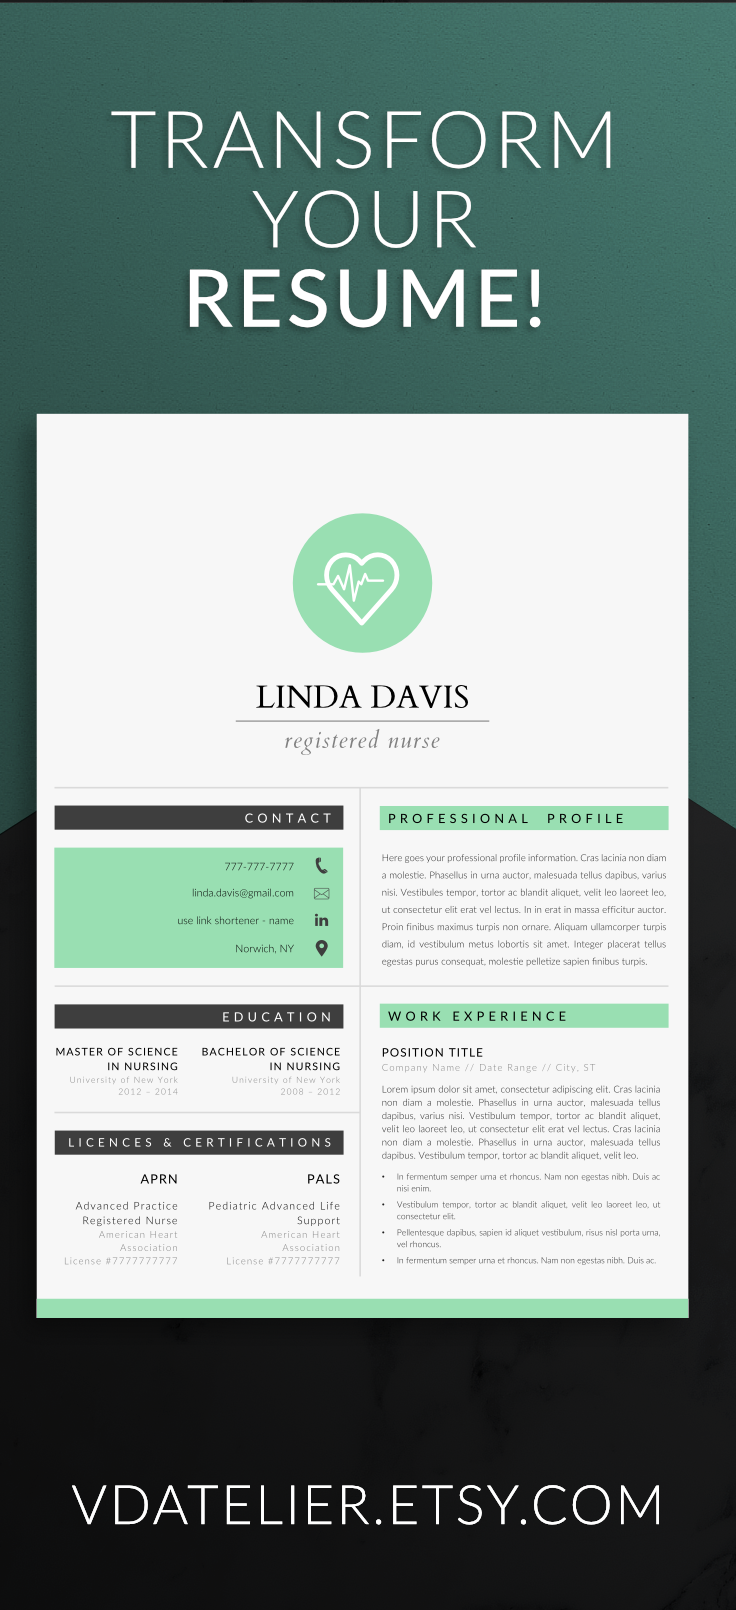 Nurse Resume Template For Modern Professionals Suitable As Medical